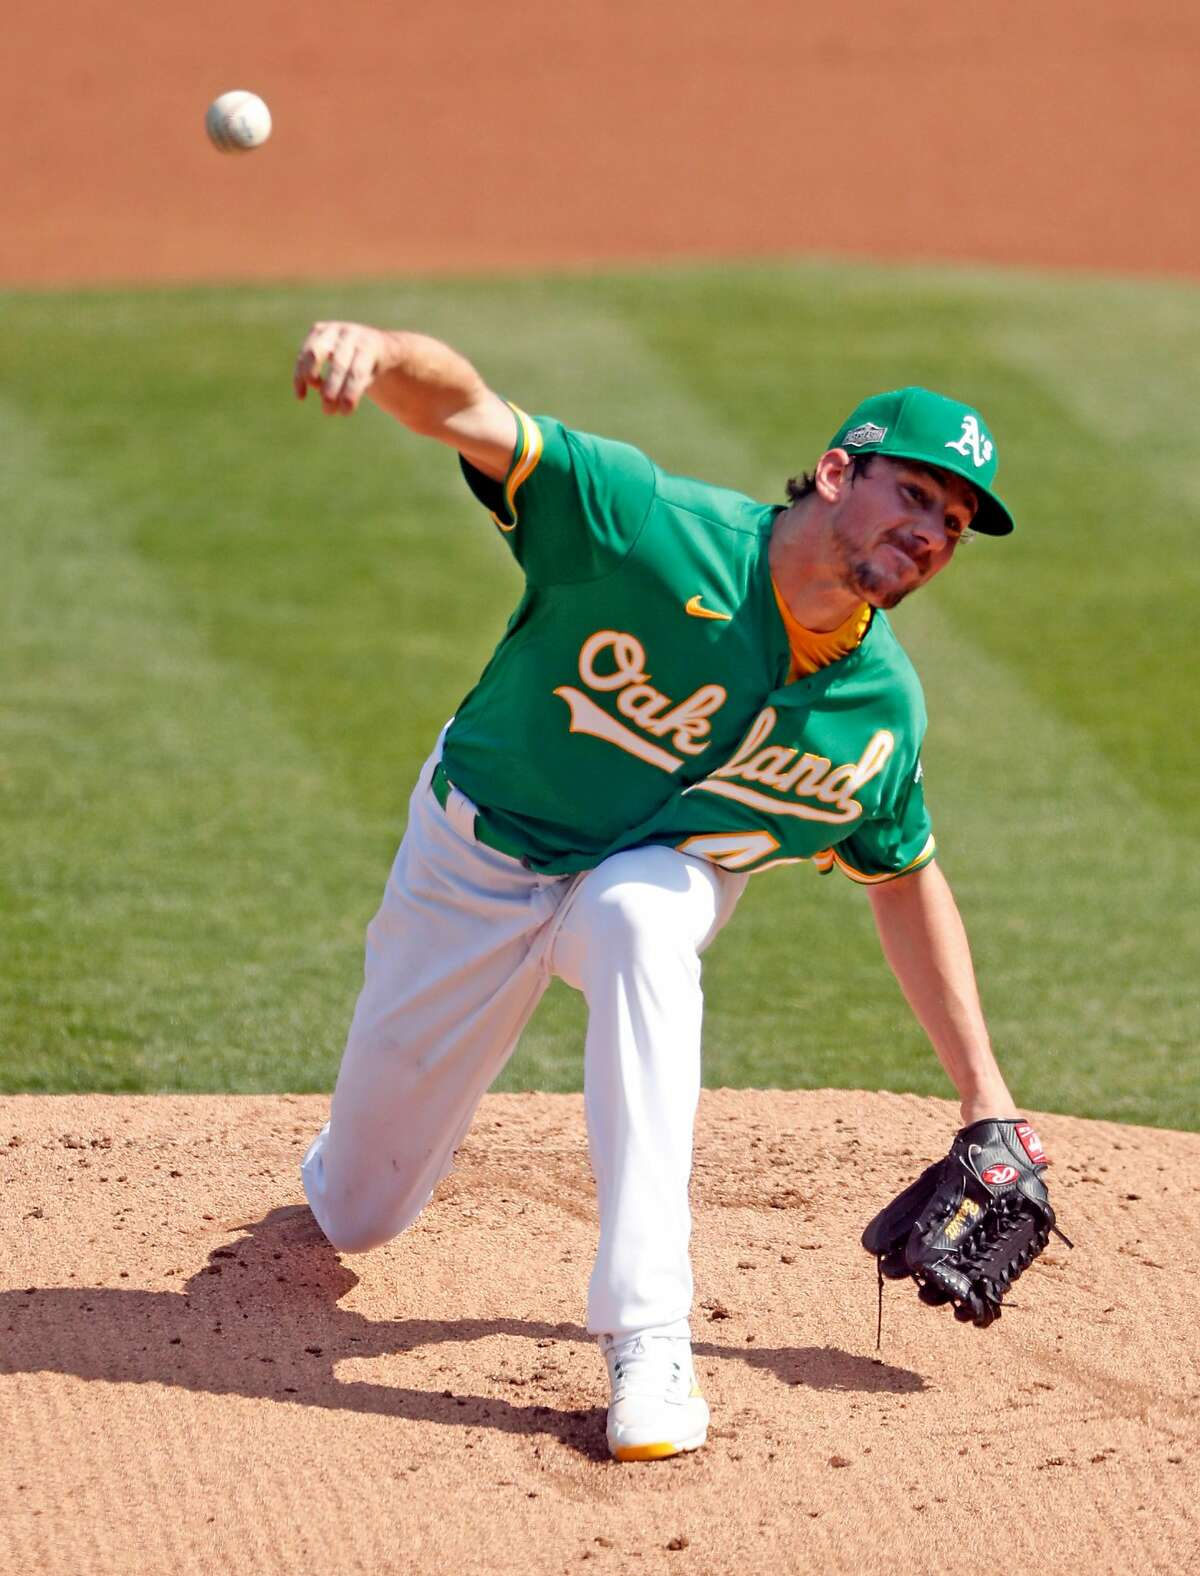 Oakland Athletics' Chris Bassitt pitches in 1st inning against Chicago White Sox during American League Wild Card Series Game 2 at Oakland Coliseum in Oakland, Calif., on Wednesday, September 30, 2020.